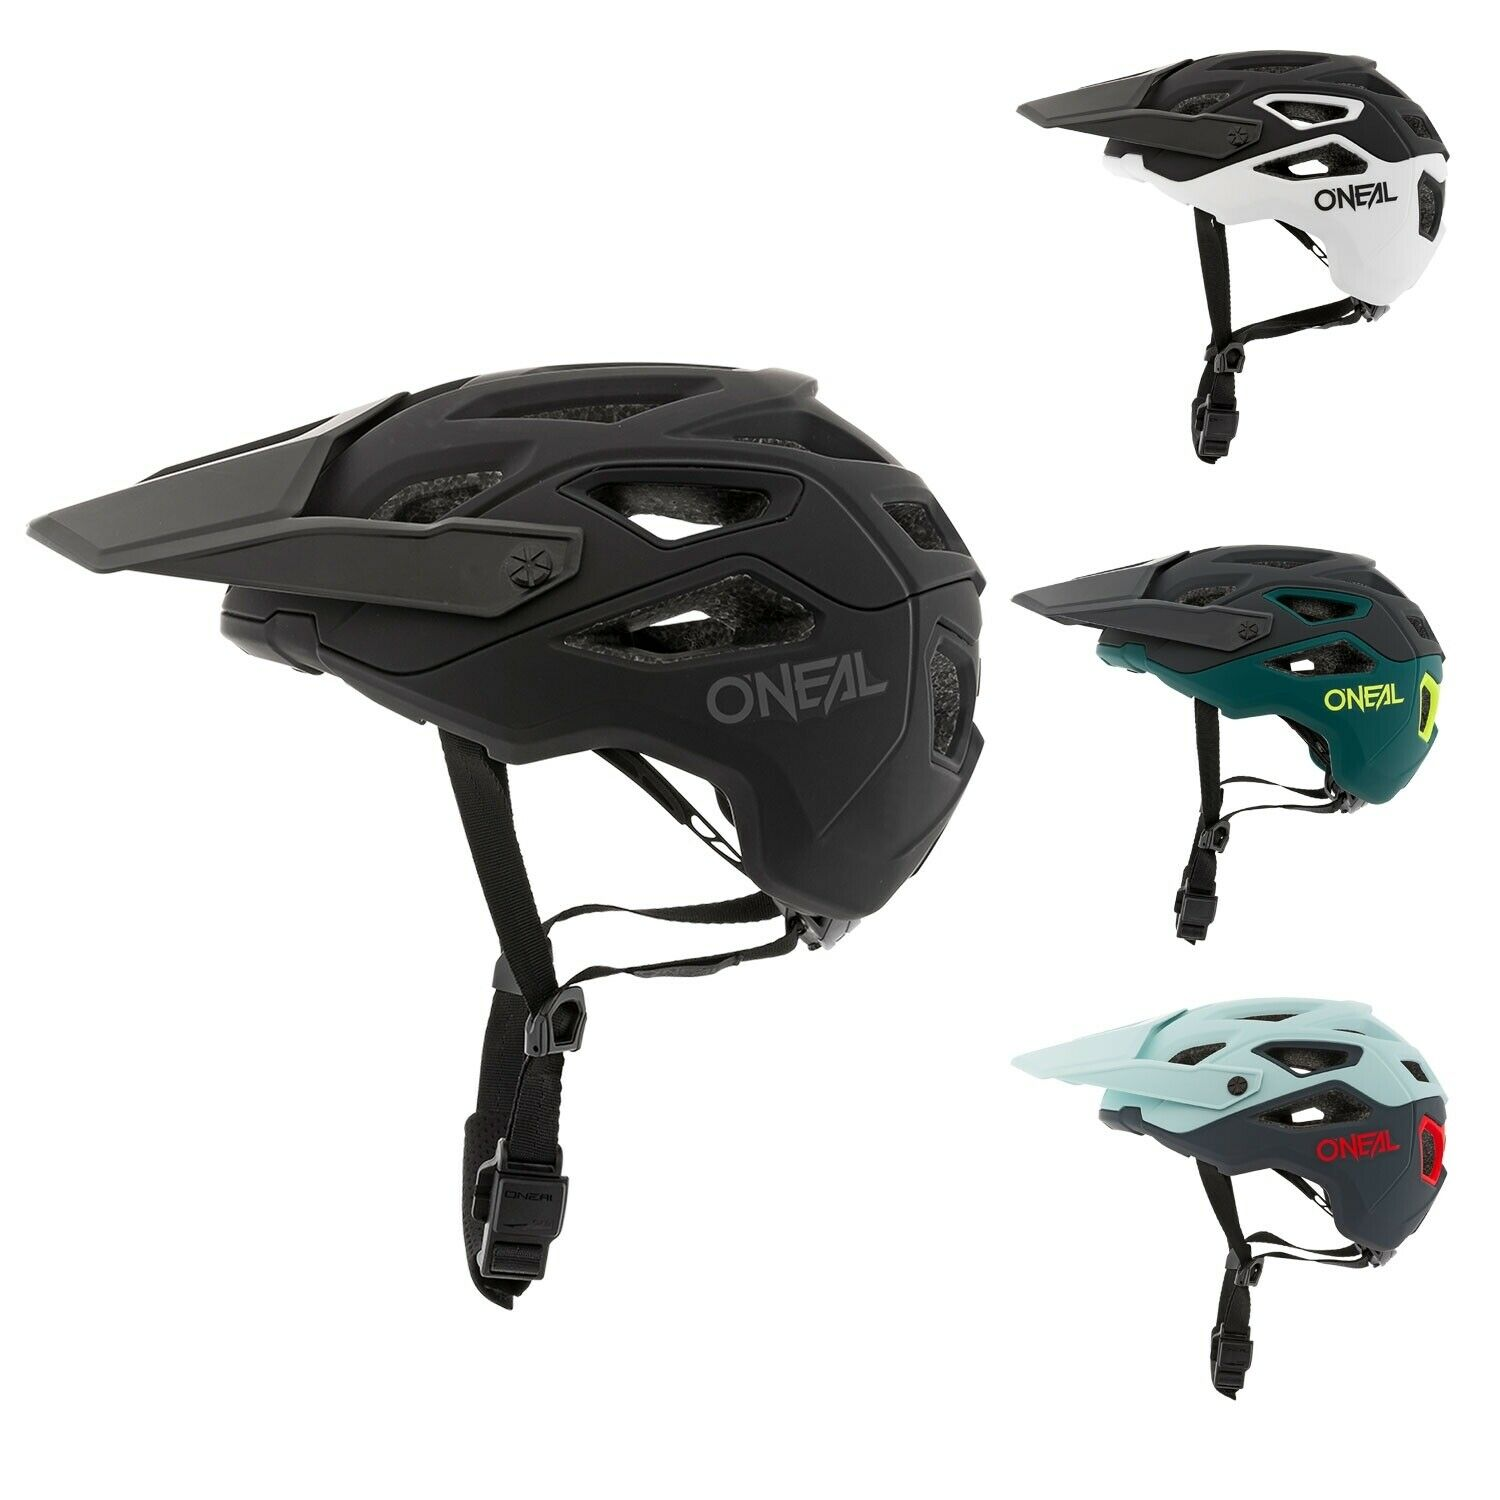 Oneal Pike alpin DH VTT 2.0 MTB Casque Solid